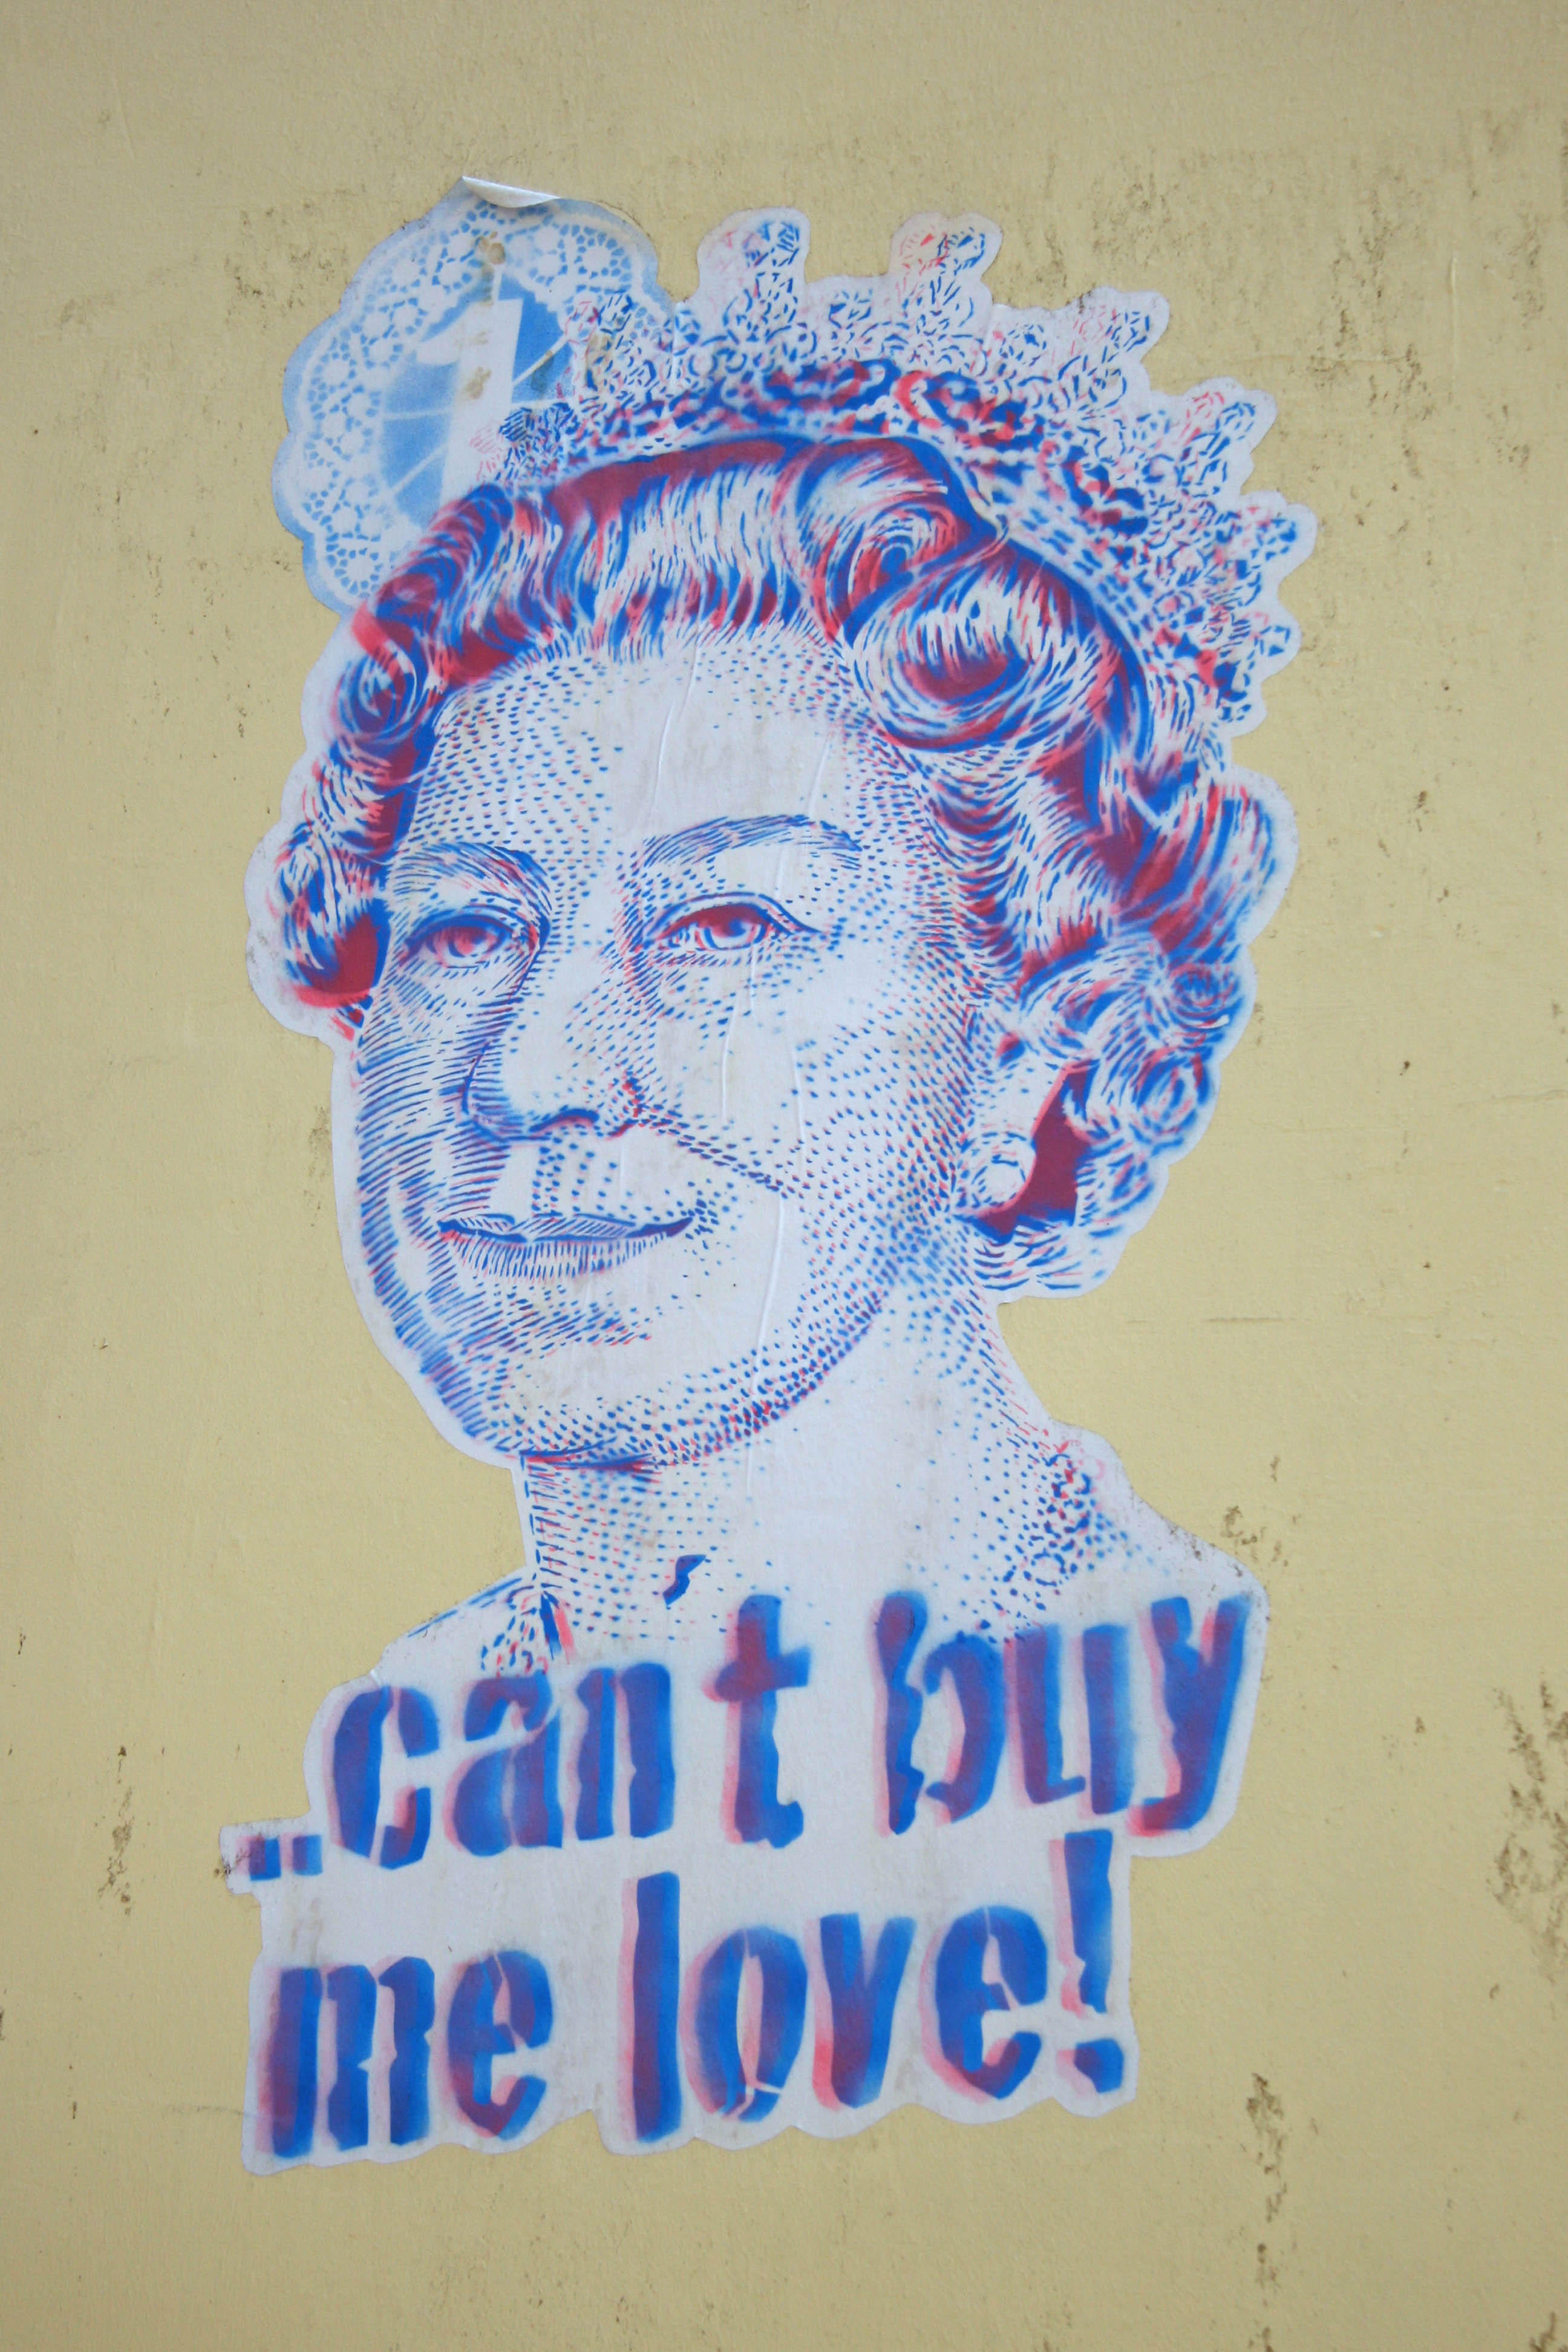 Can't Buy Me Love: Street Art by Unknown Artist in Berlin